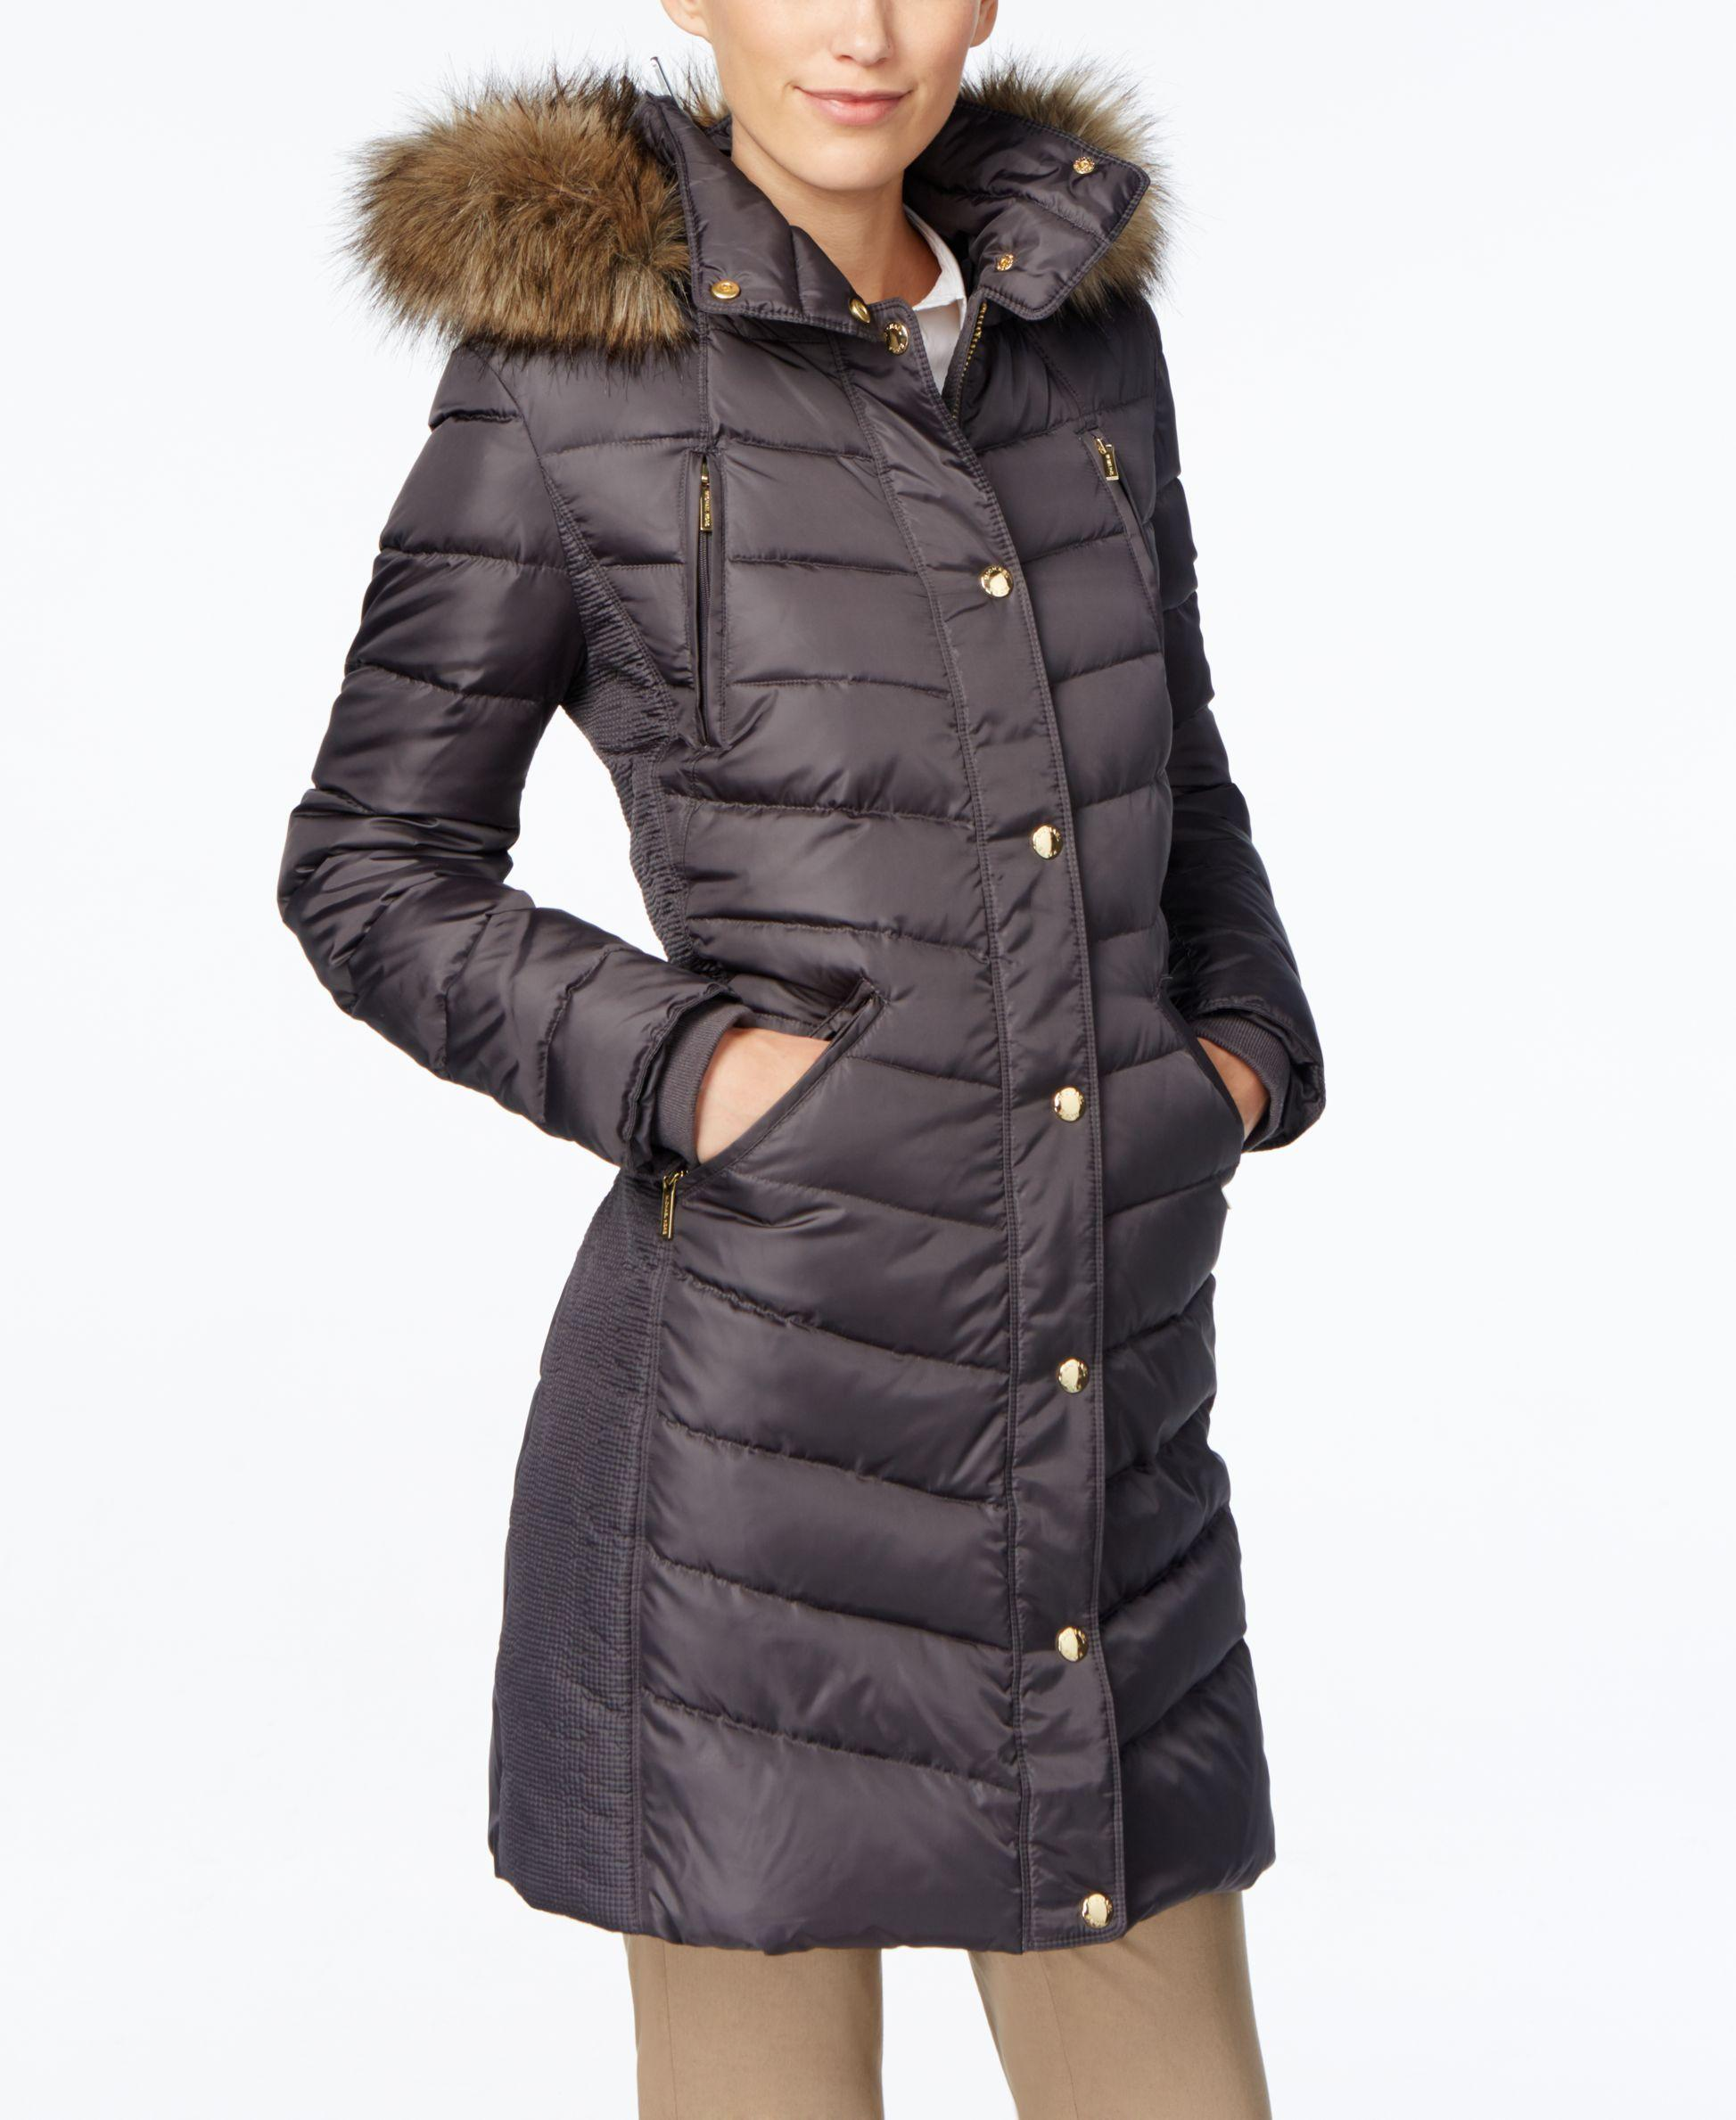 66ef4bcfa621 Lyst - Michael Kors Petite Faux-Fur-Trimmed Down Puffer Coat in Gray